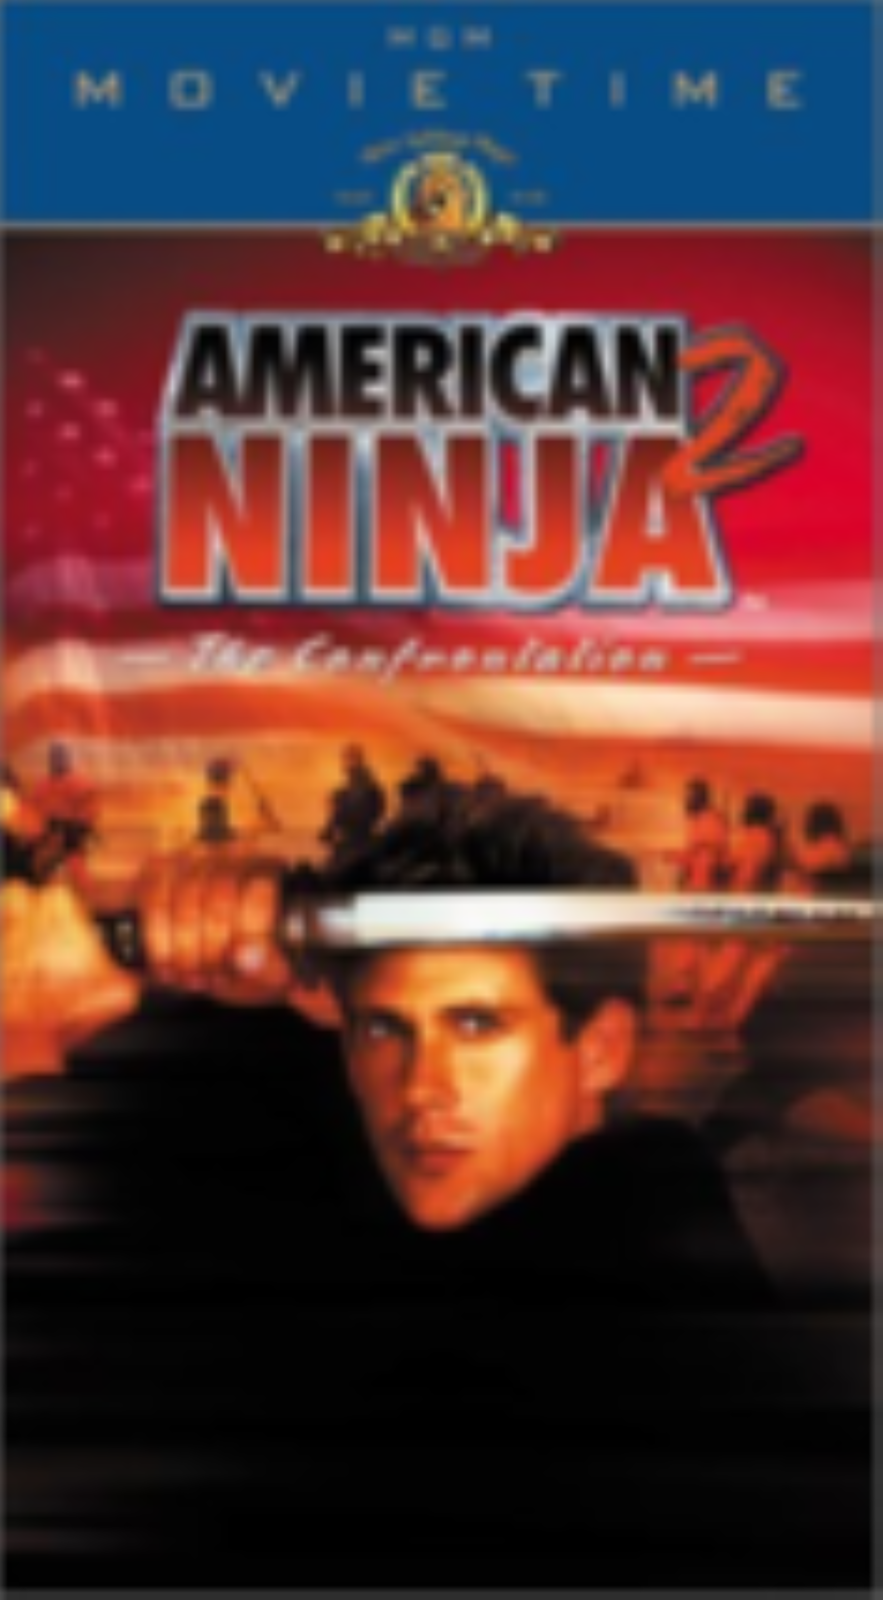 American Ninja 2 - The Confrontation Vhs